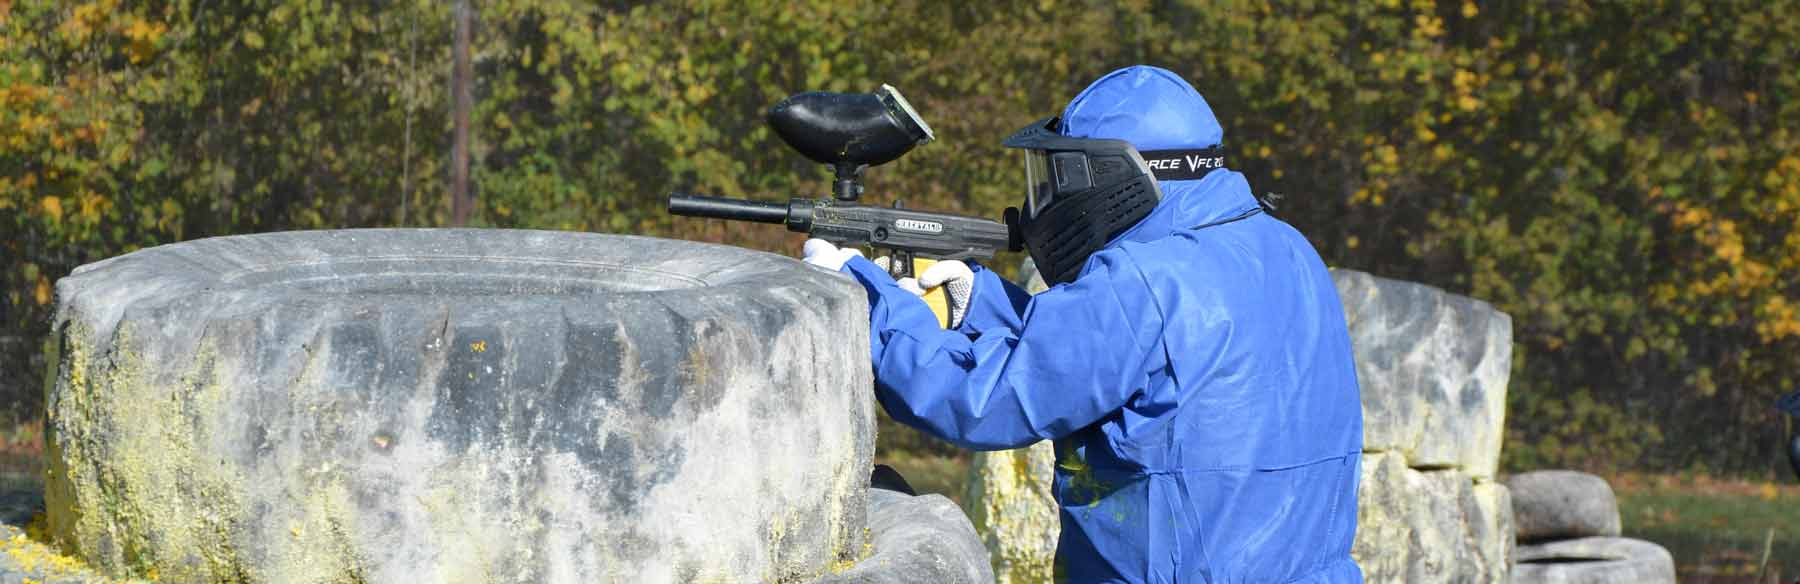 Paintball Günzburg - Paintball spielen in Bayern